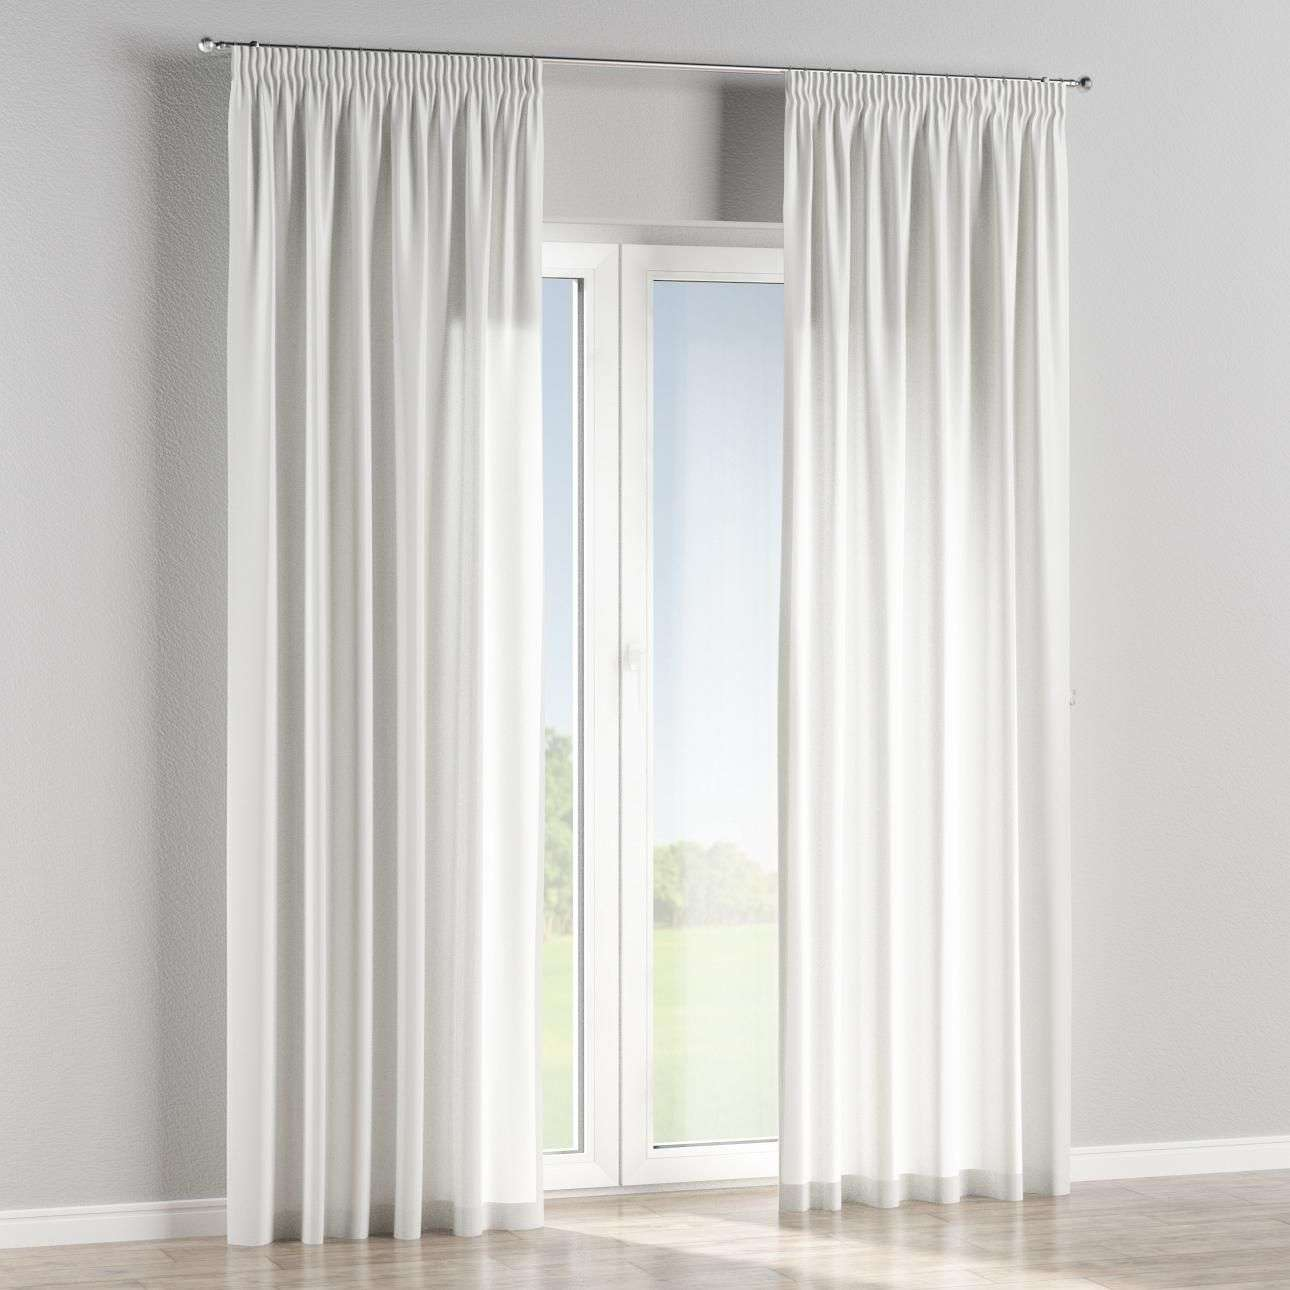 Pencil pleat curtains in collection Jupiter, fabric: 127-02